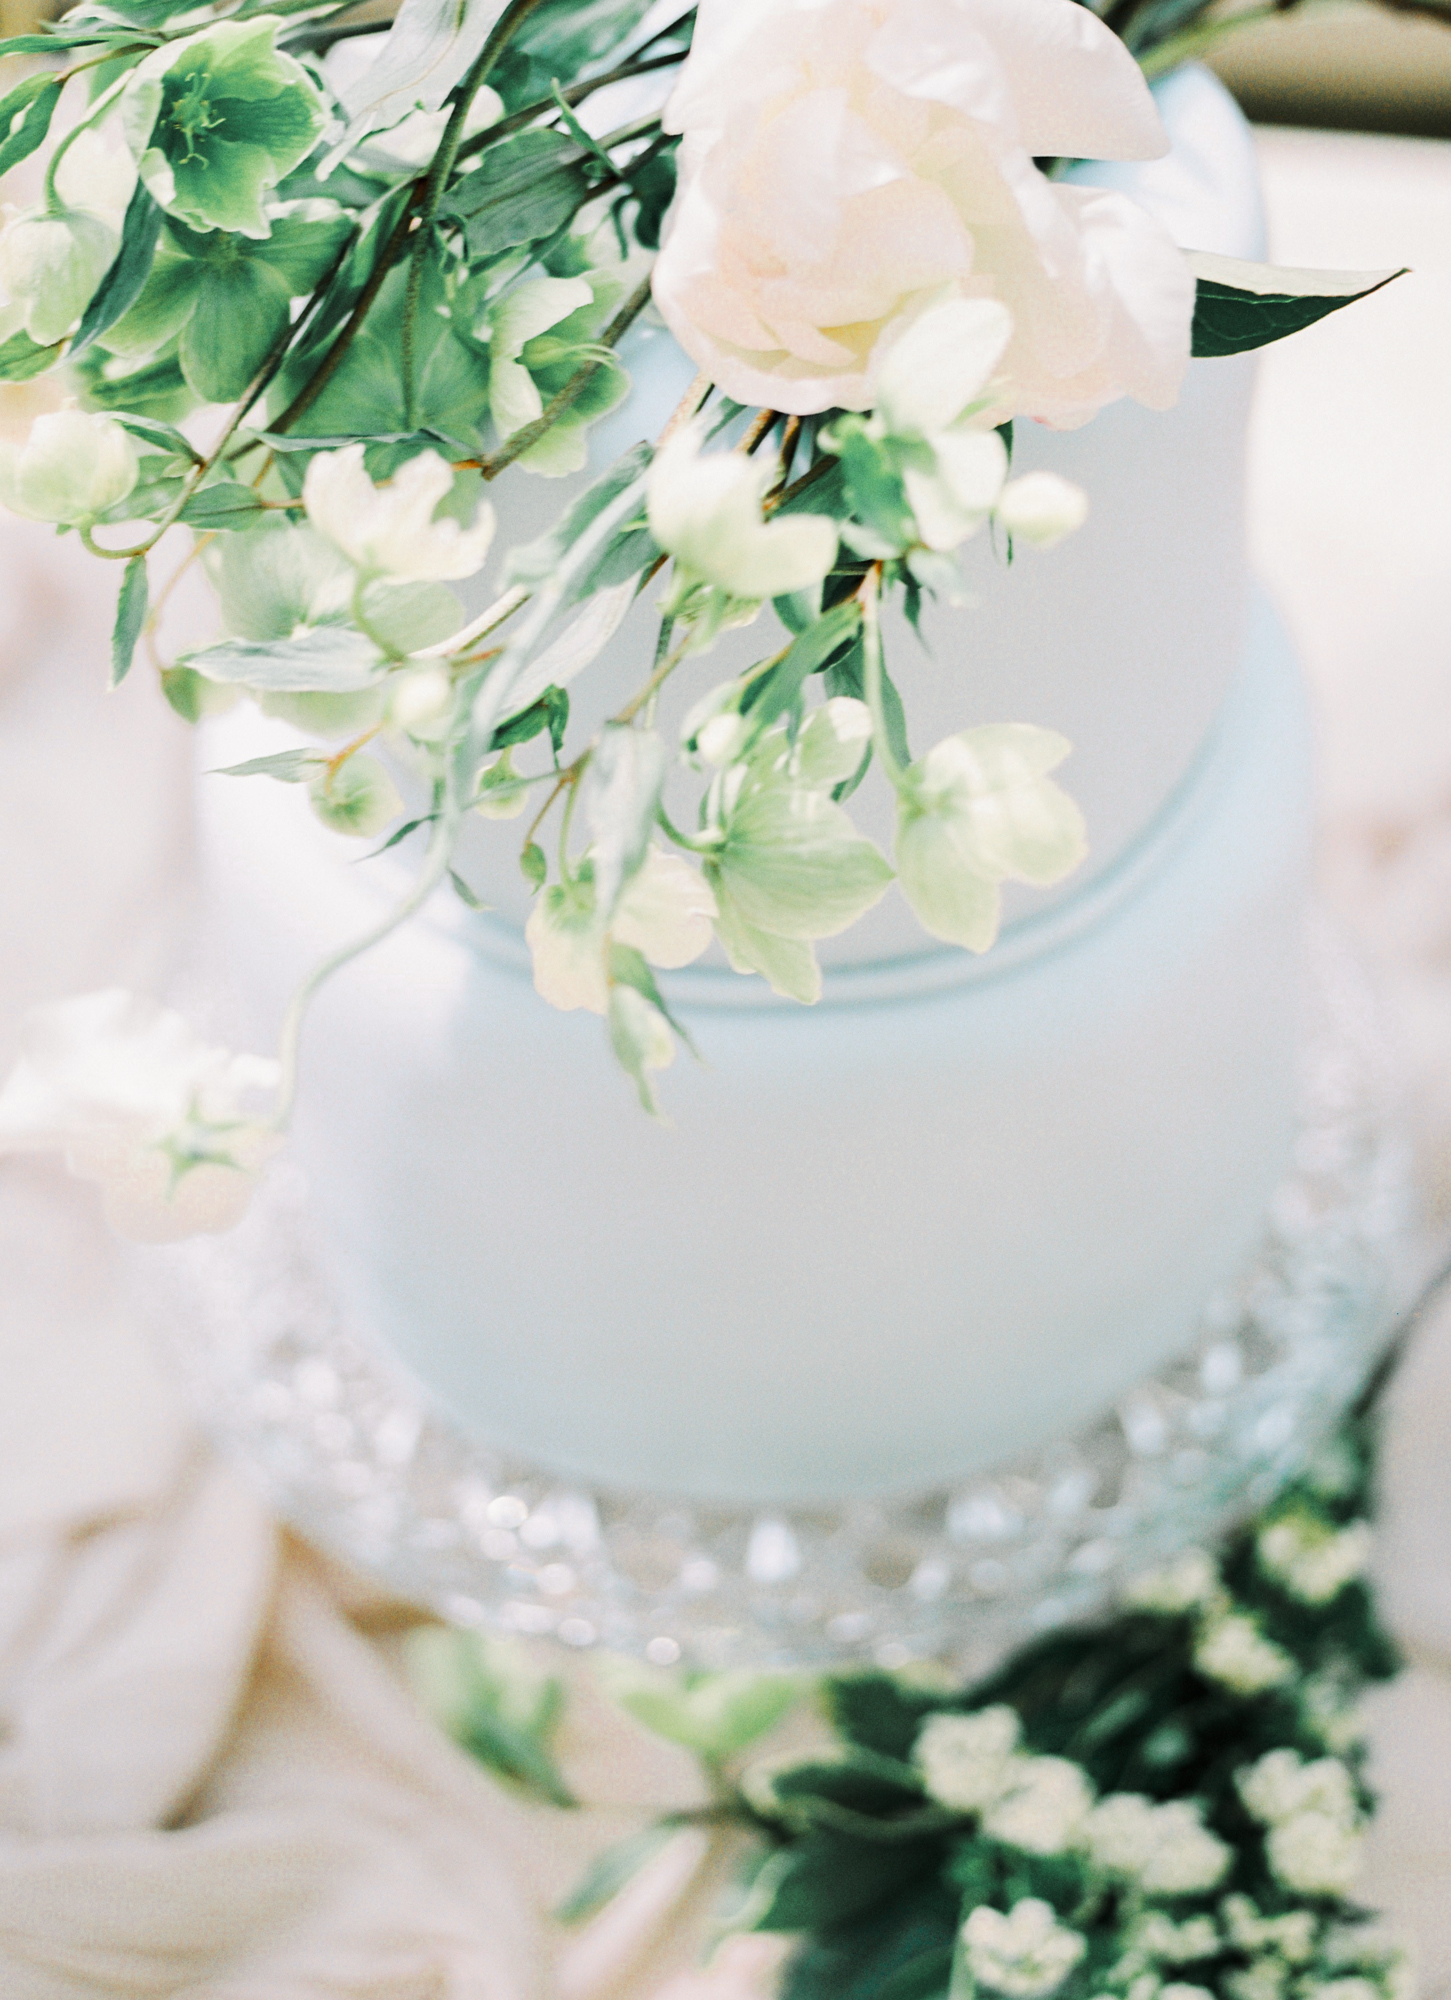 Luxury Wedding Planner - Experts Guide - Wedding Cakes - Image 2 - Pastle Blue White Flowers Romantic Wedding.JPG